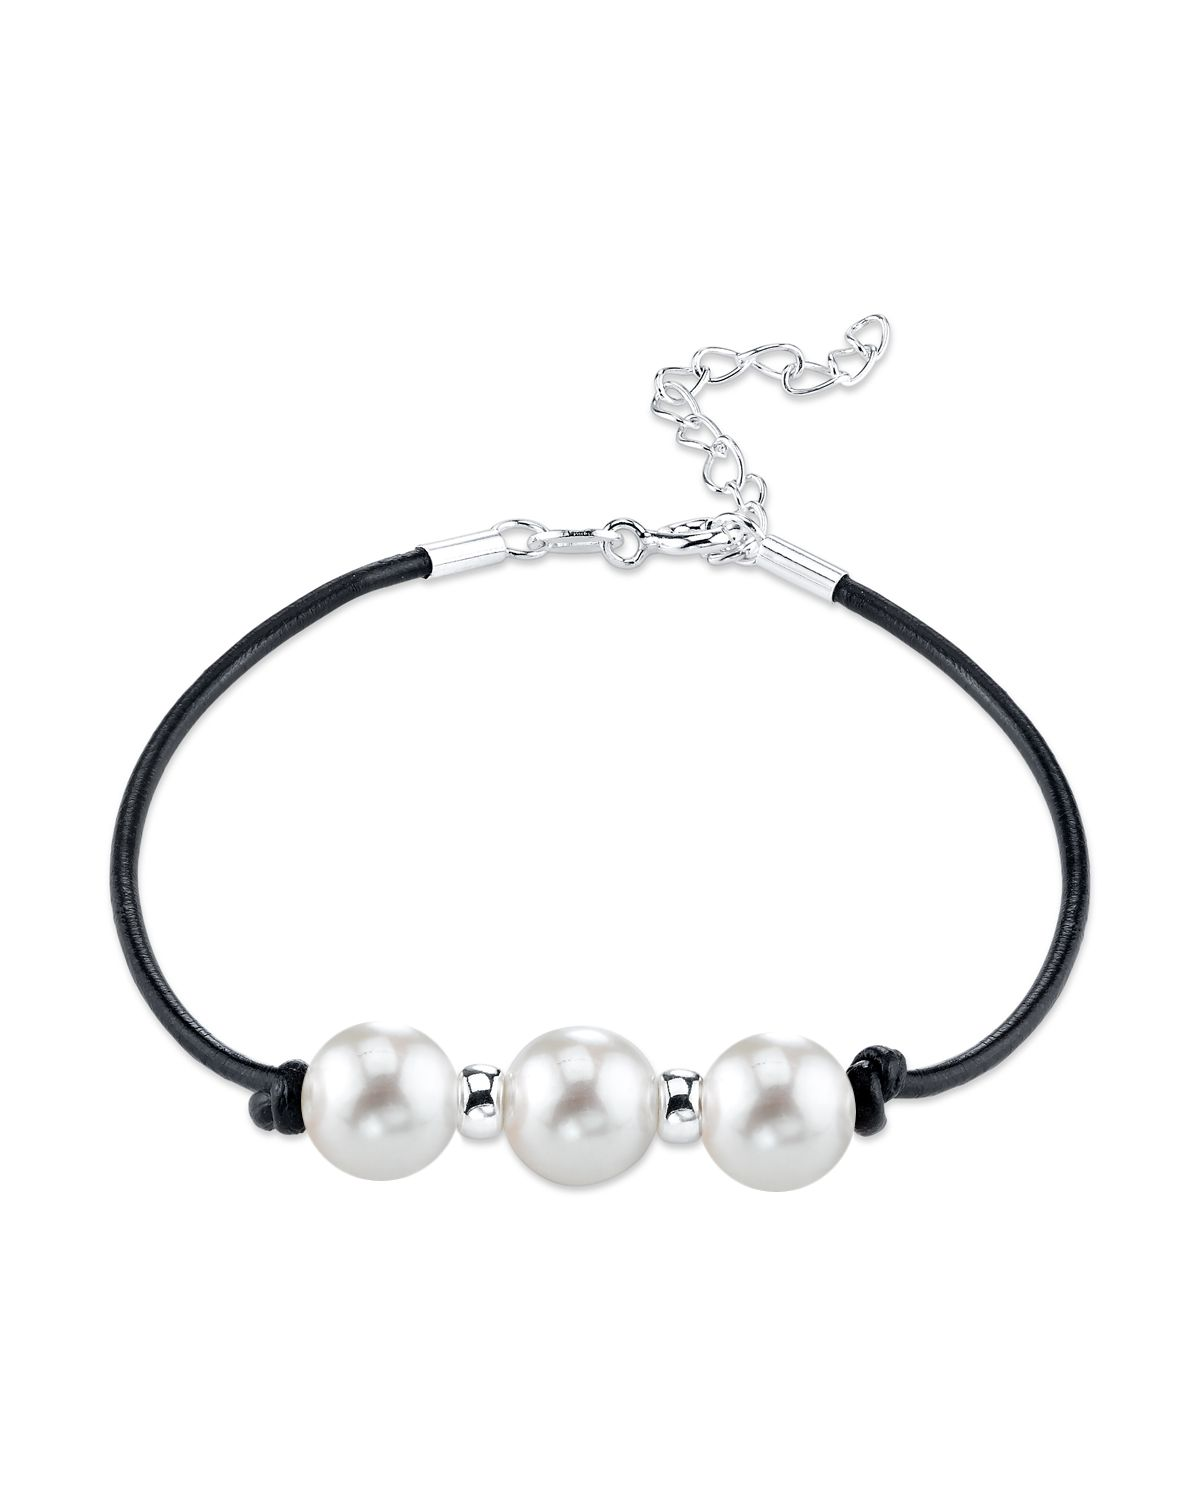 8mm White Freshwater Pearl & Silver Rondelle Leather Bracelet